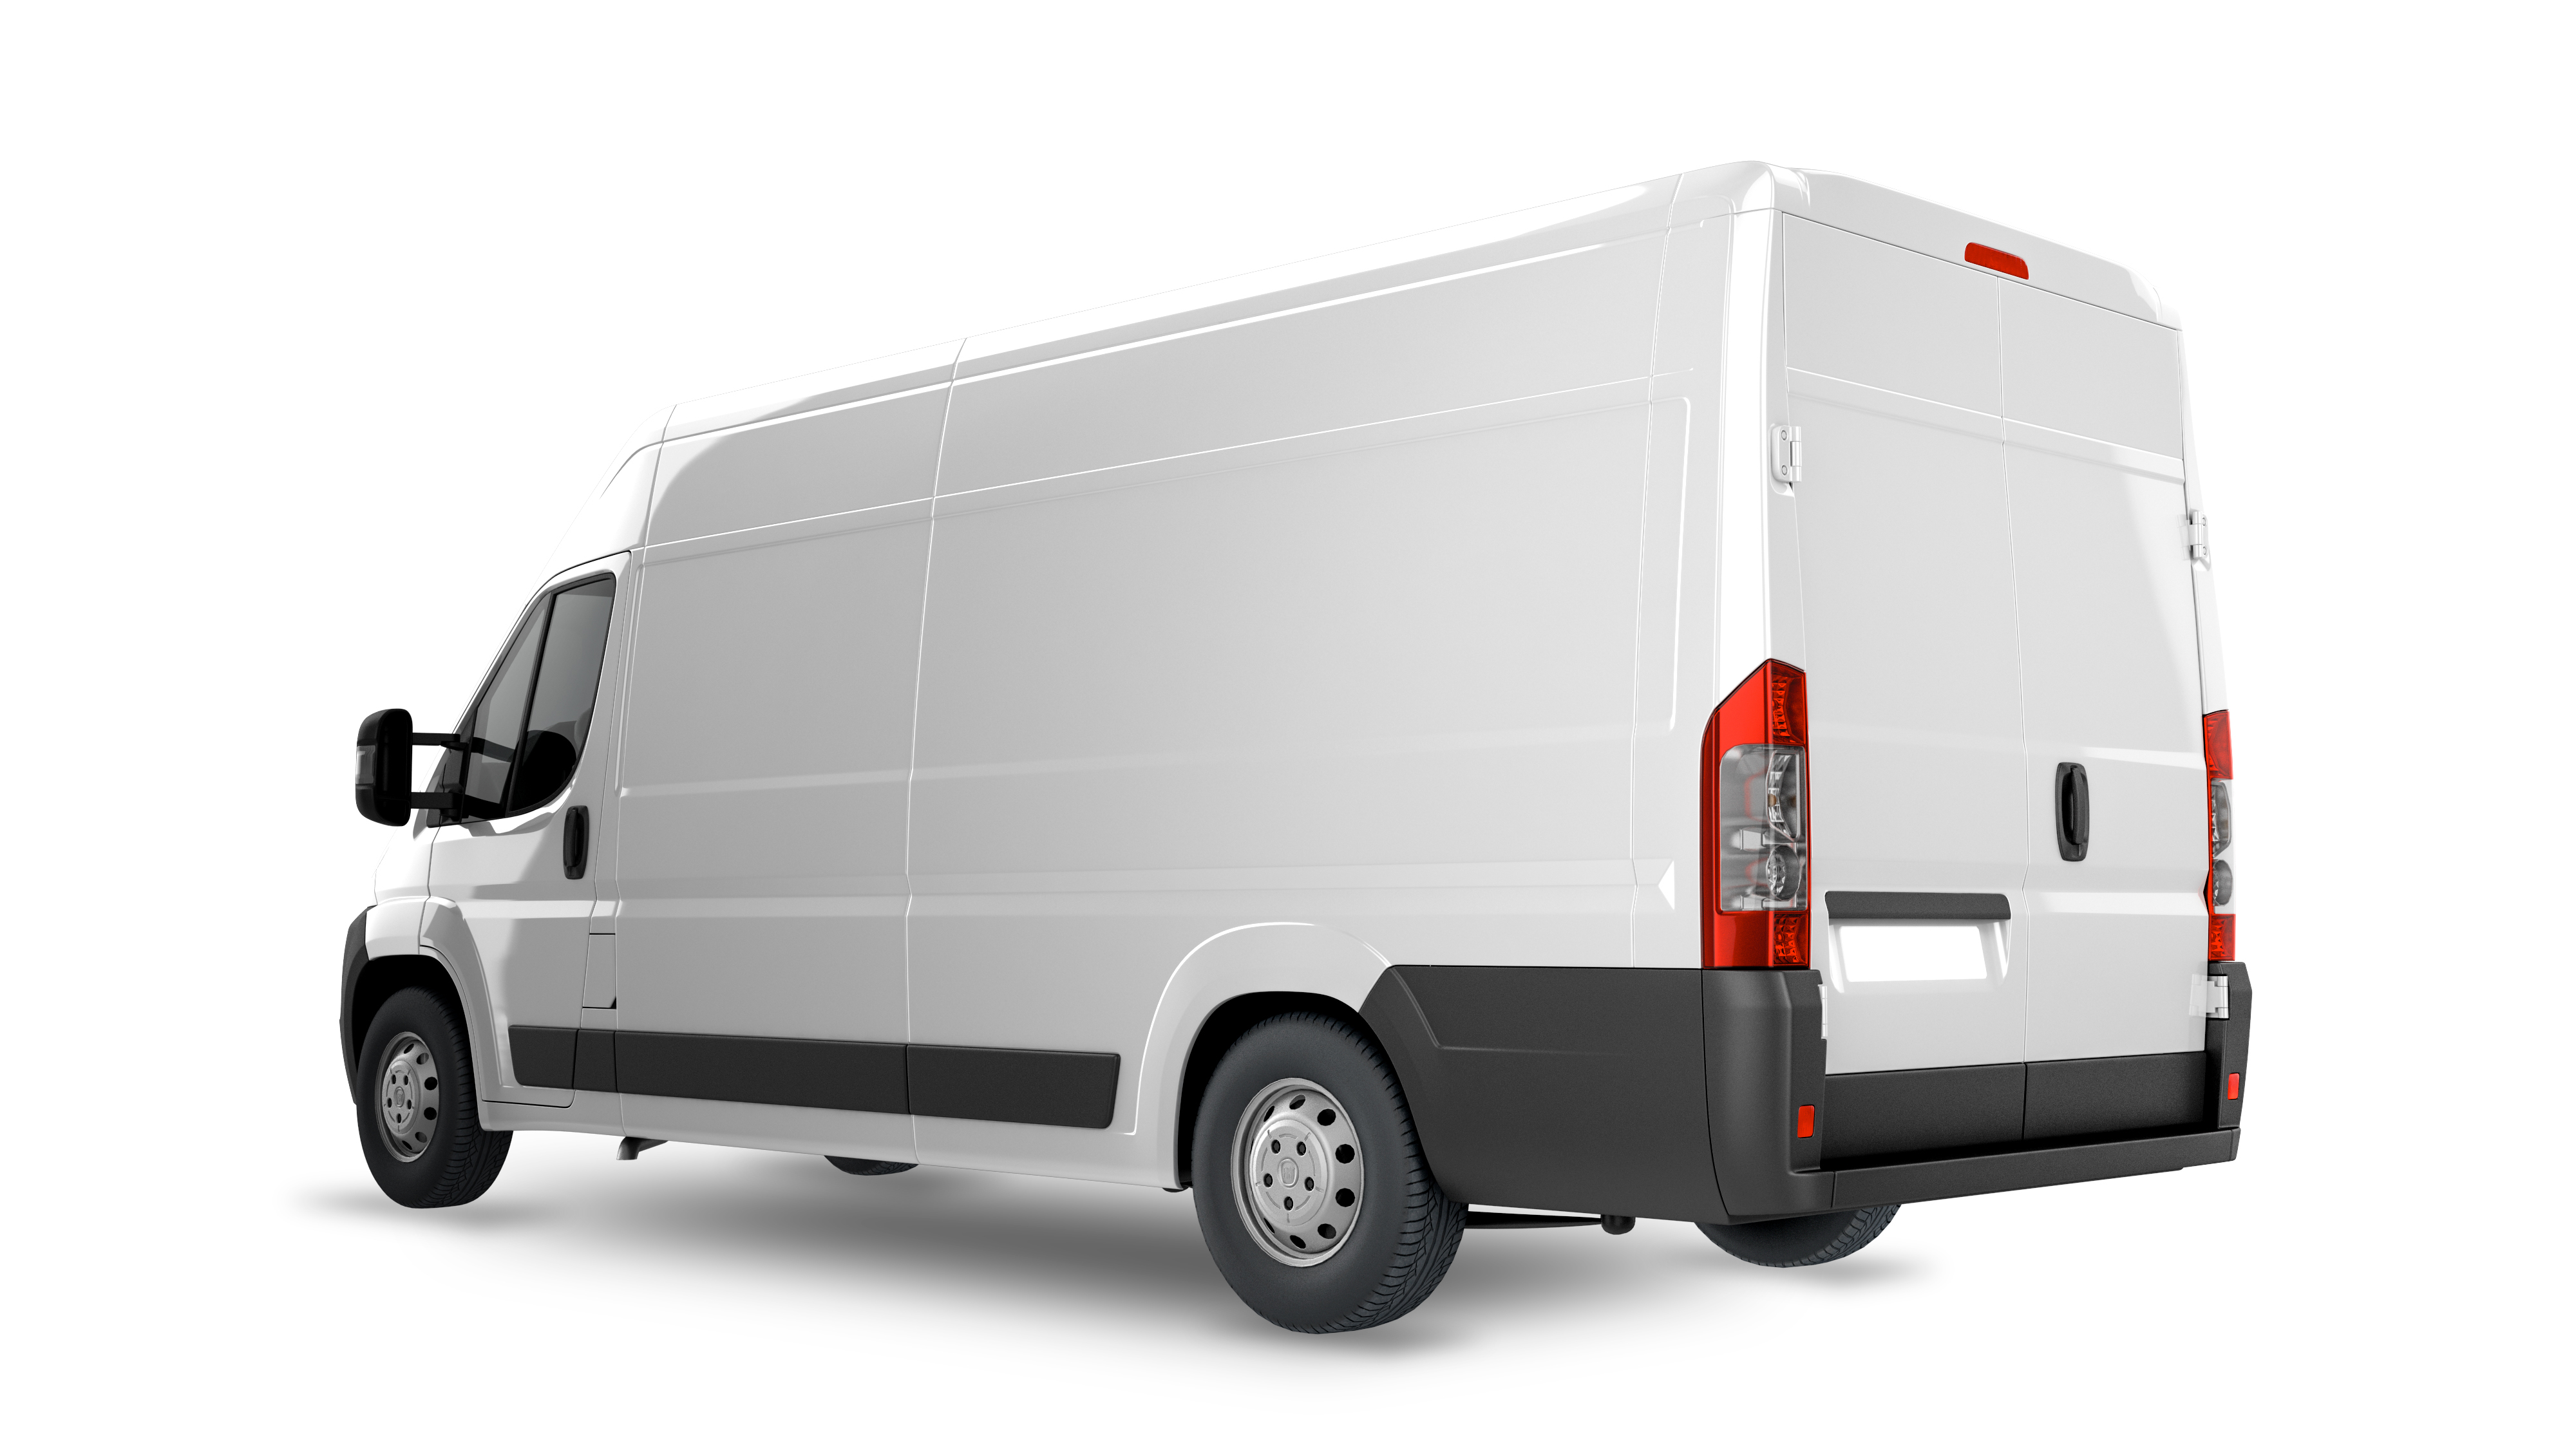 Delivery Van Mockup, layout for presentation. 3D render illustration. PLace your design on this blank canvas.